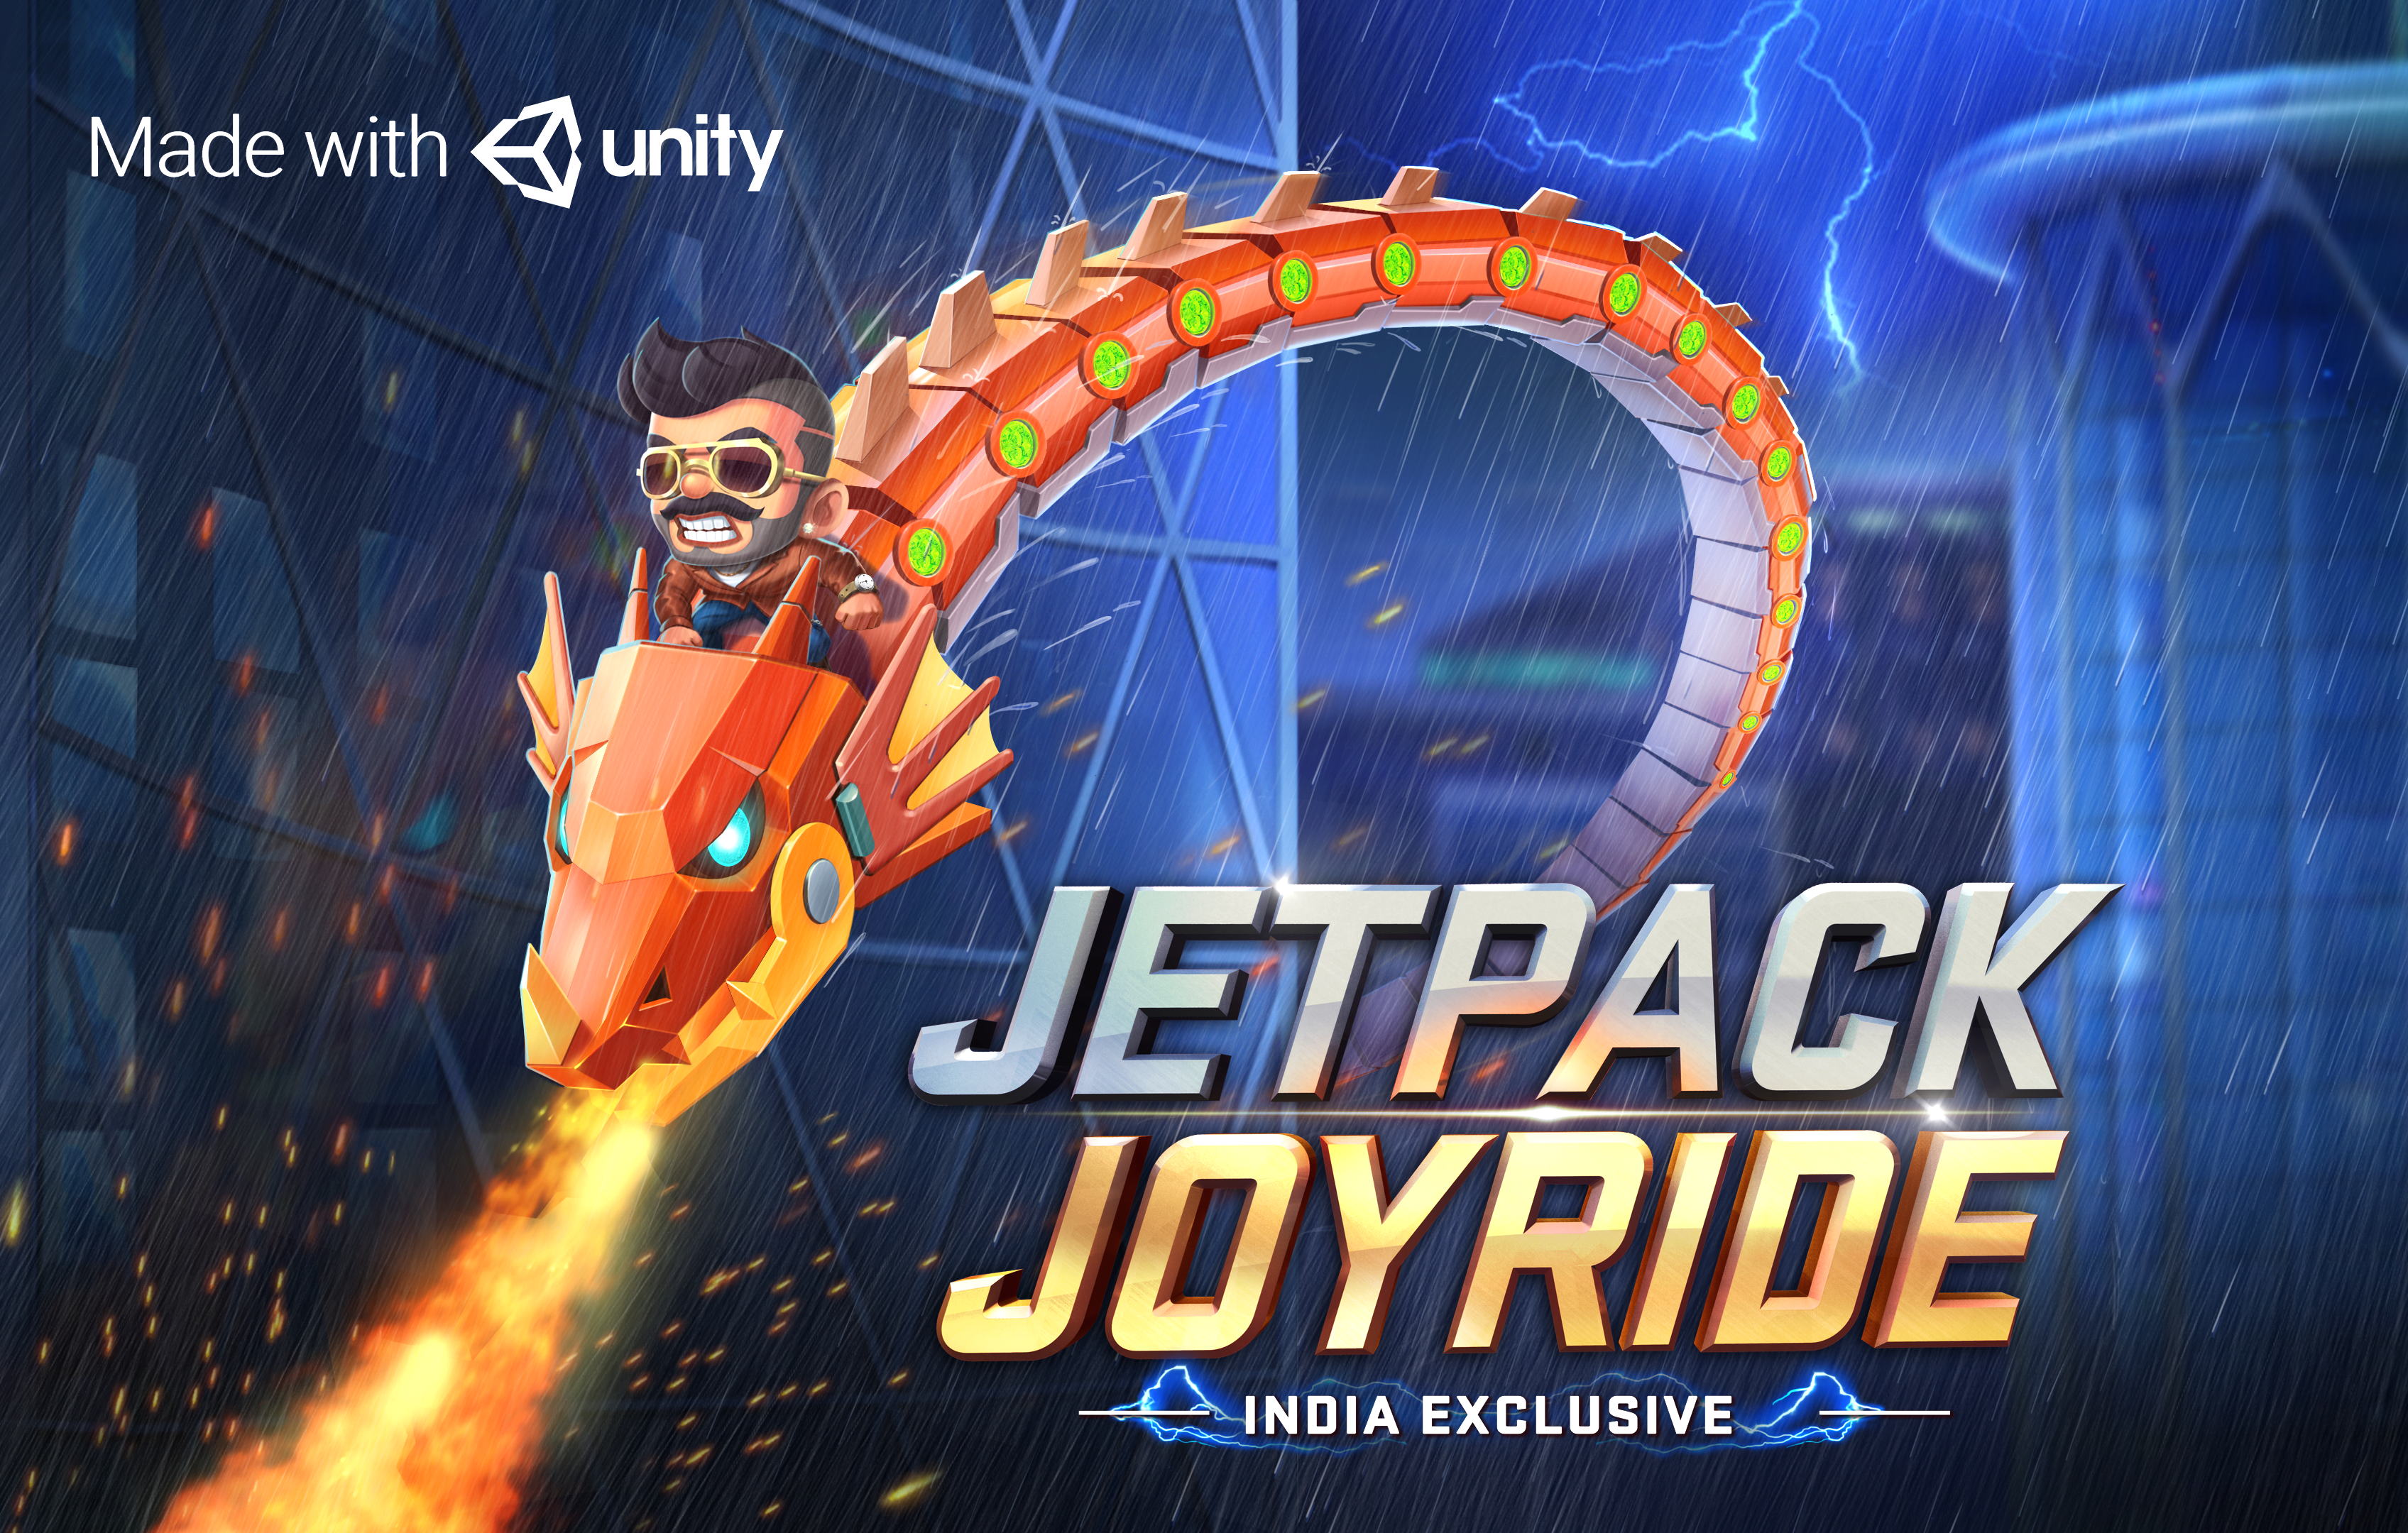 Jetpack Joyride India